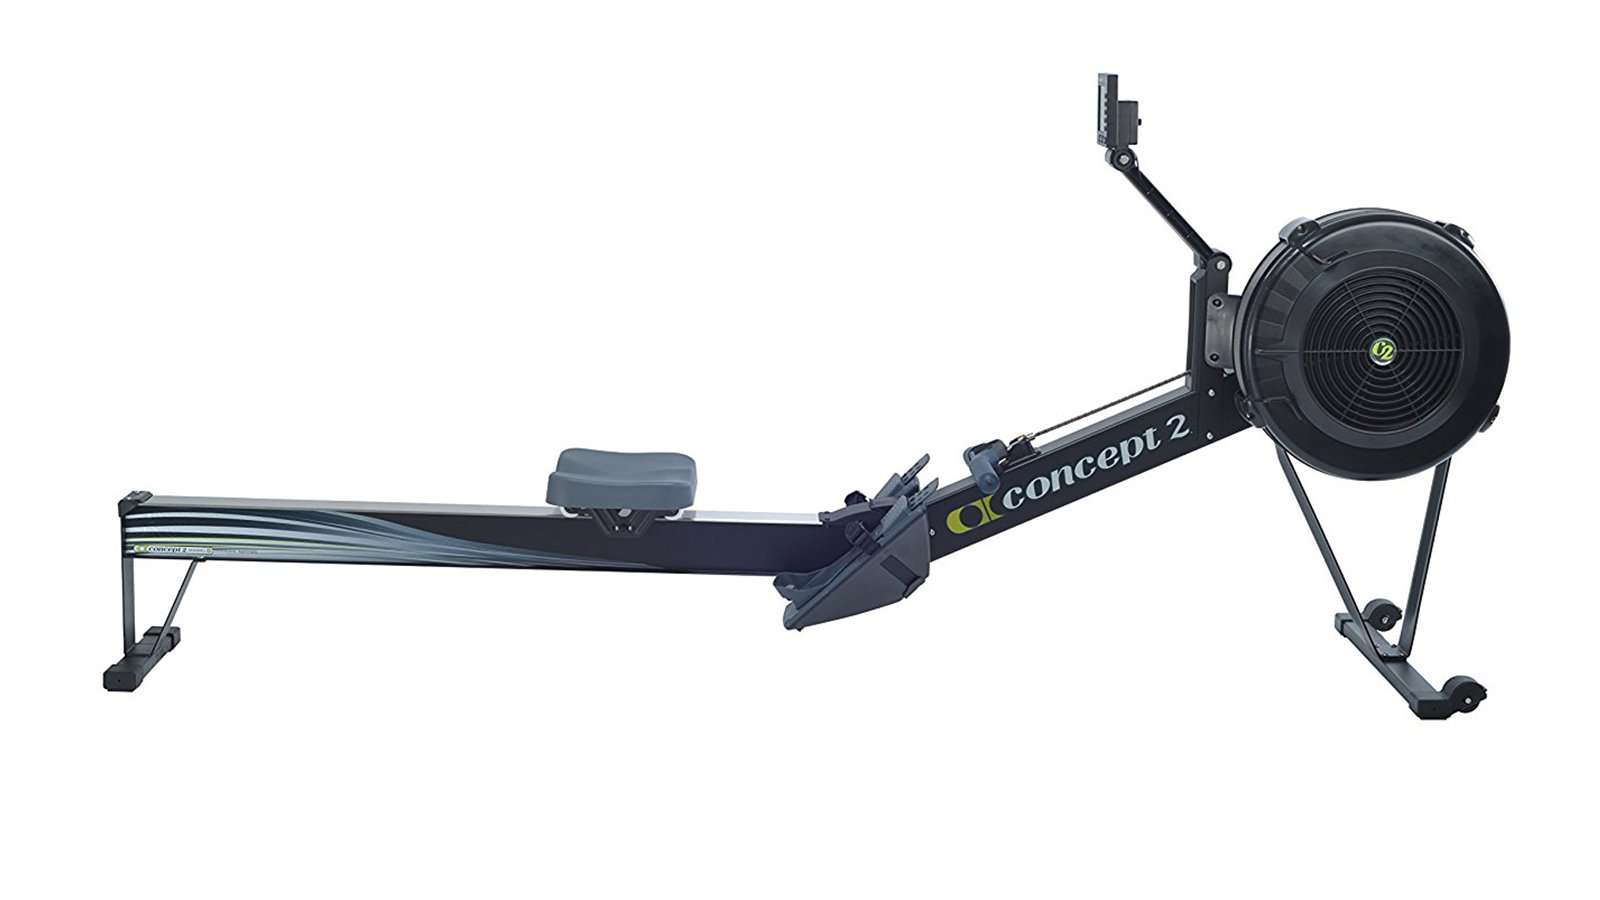 Best home rowing machine - Concept 2 Model D with PM5 Monitor